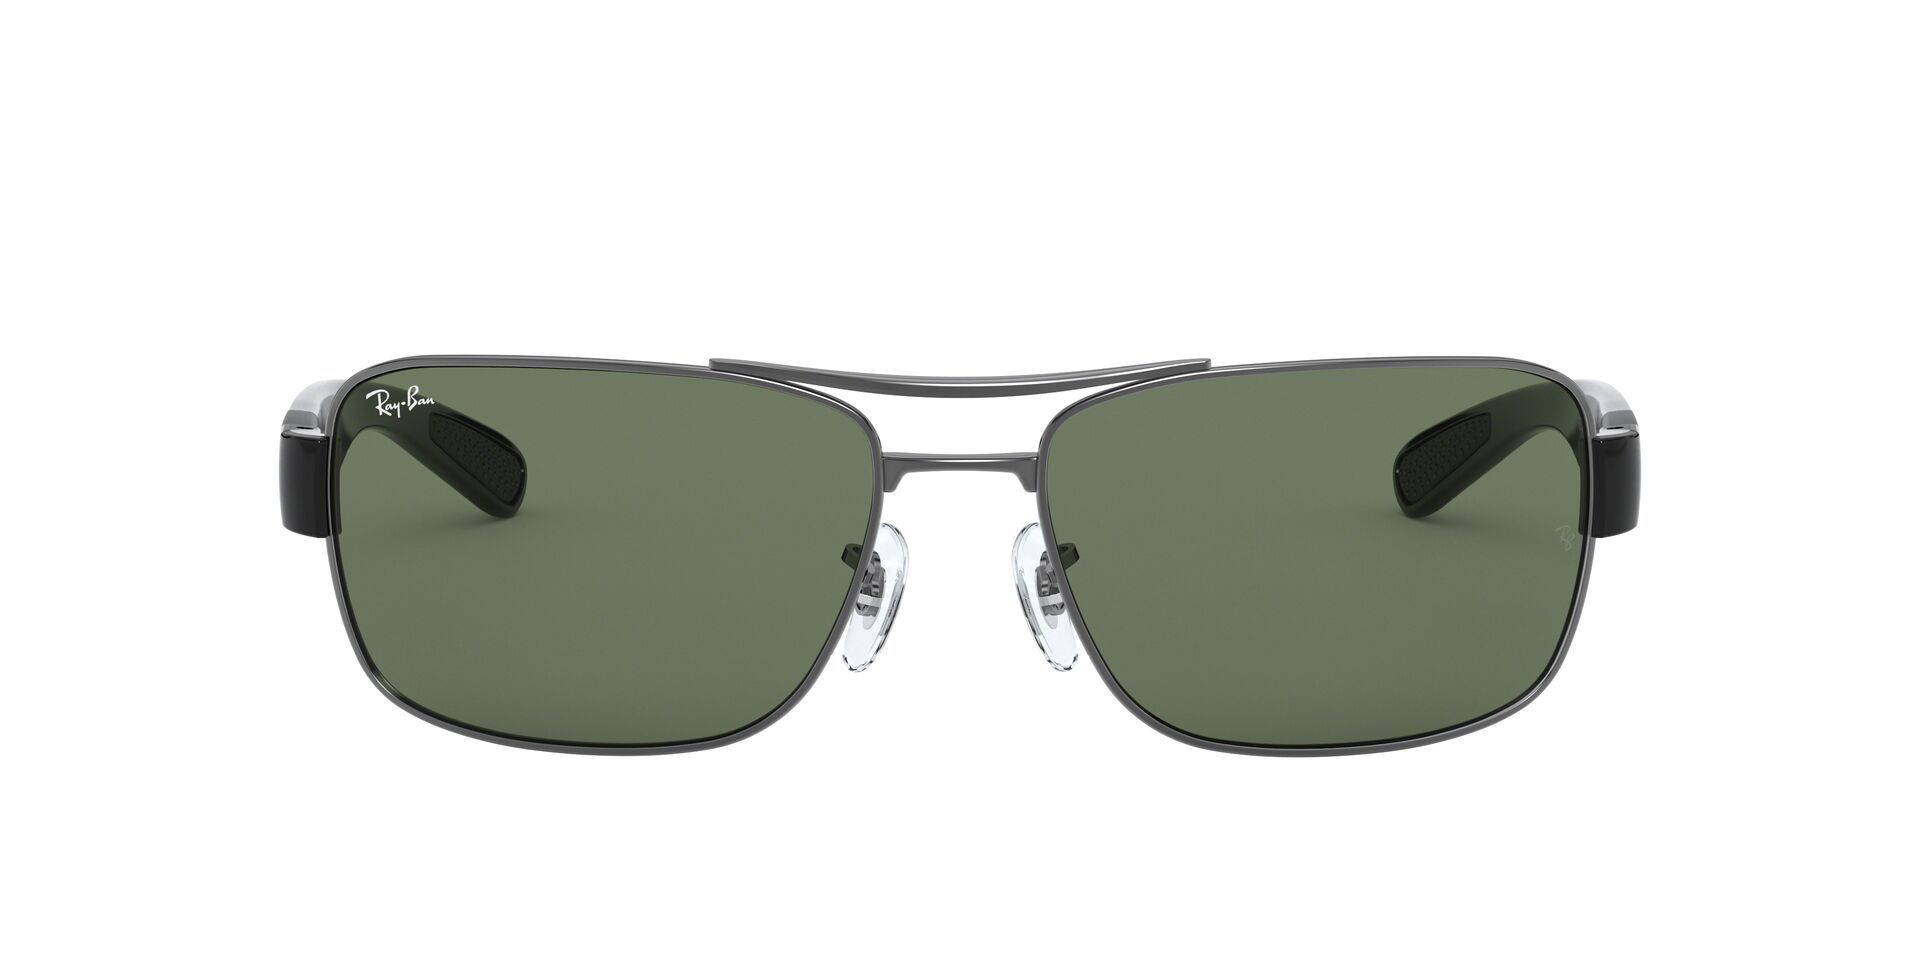 Ray Ban - RB3522 Gray Rectangular Men Sunglasses - 64mm-Sunglasses-Designer Eyes